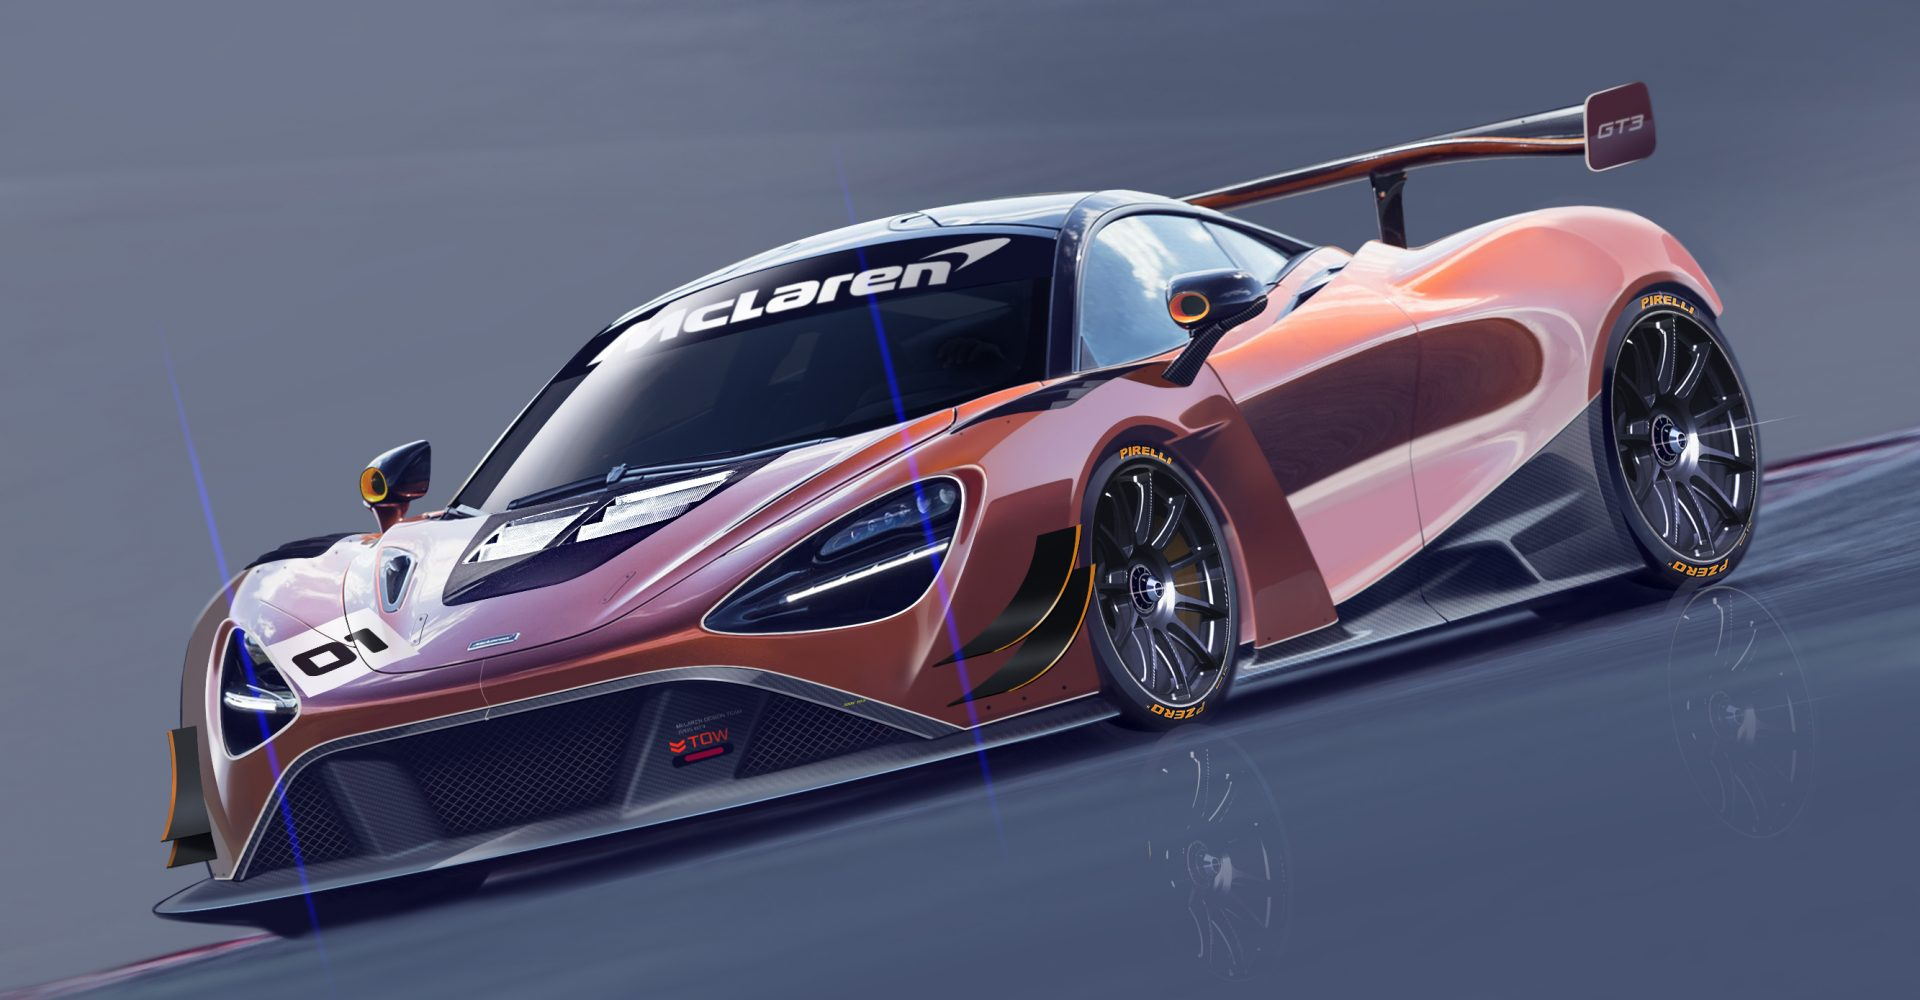 This is McLaren's new GT3 race car